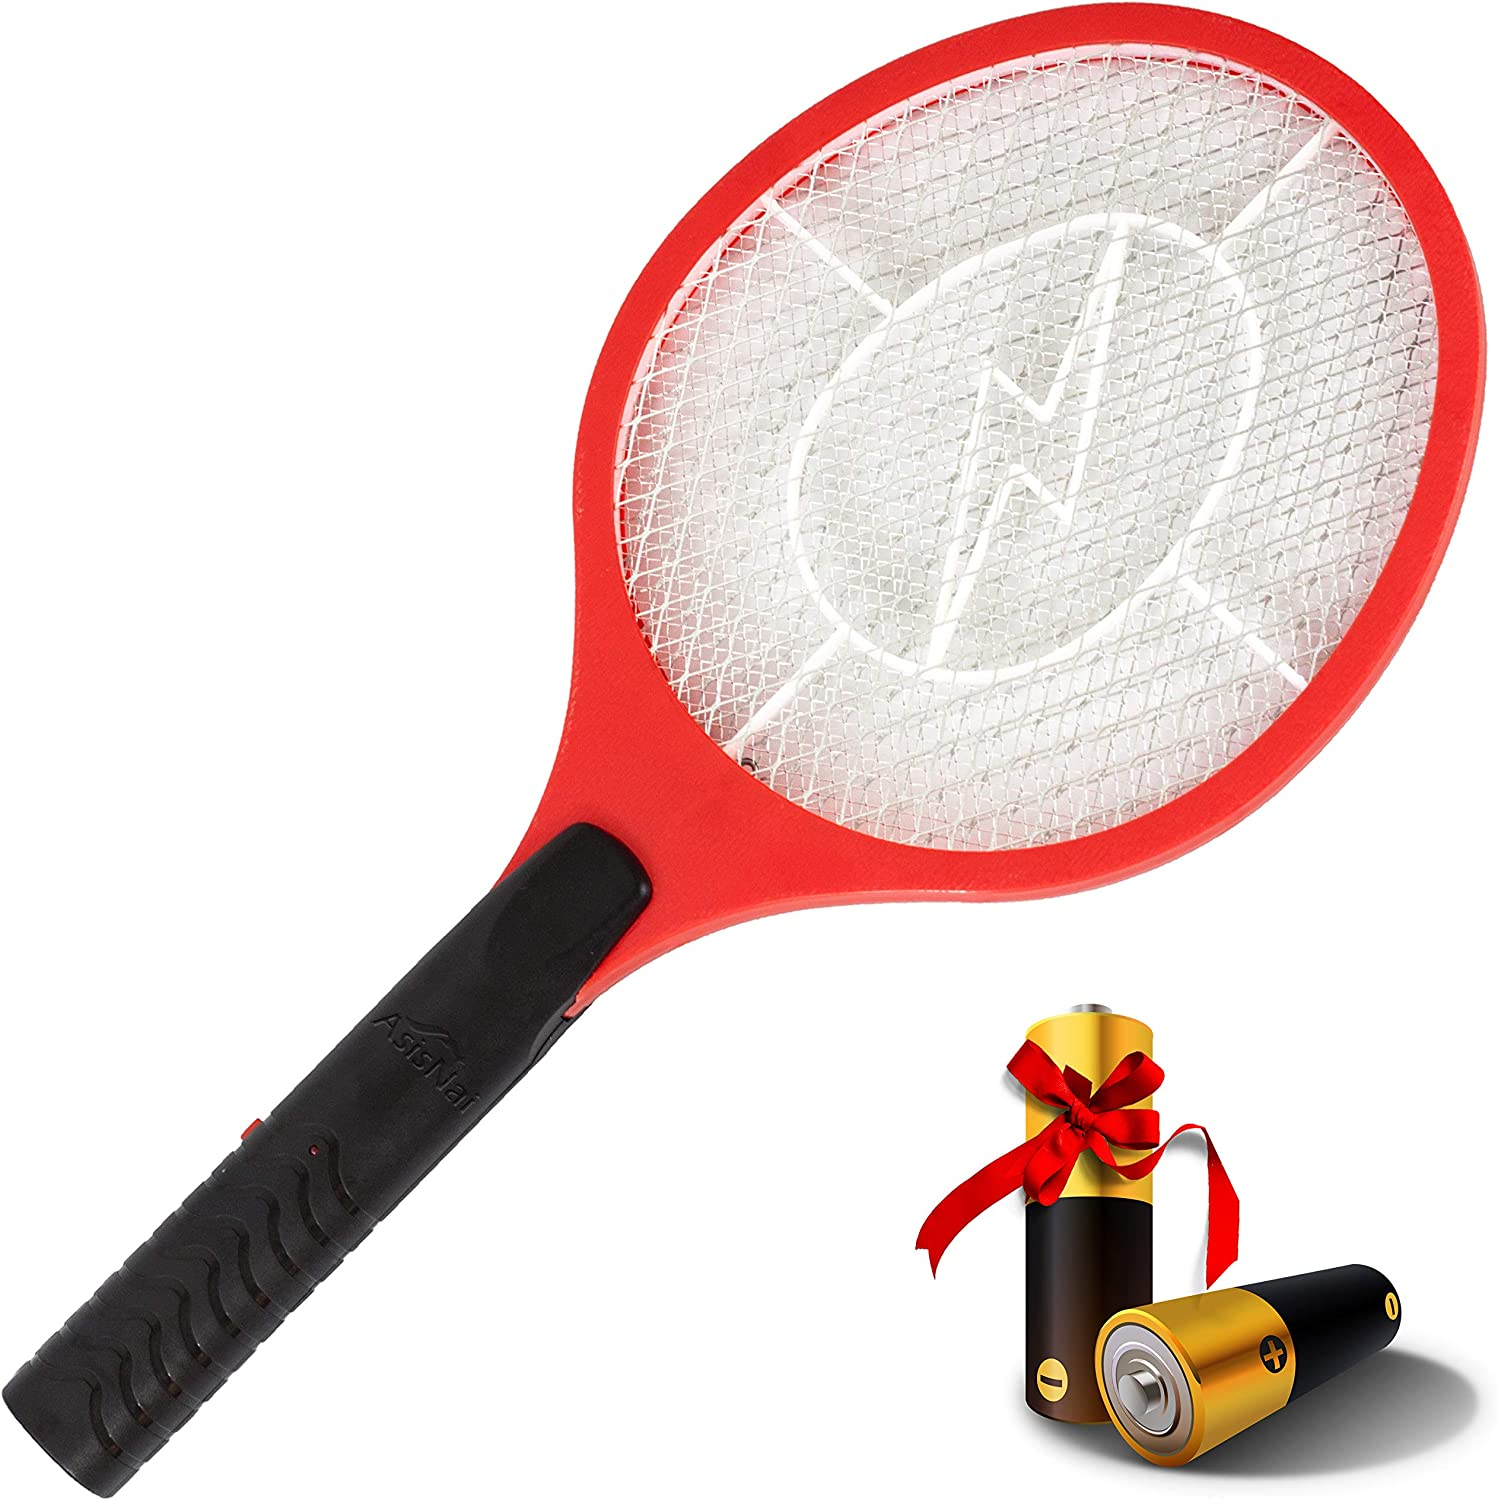 AsisNai Electric Fly Swatter Bug Zapper Mosquito Killer - 3000 Volt Zap Racket, Will Even Kill Cockroaches. Made from Durable Materials for Indoors and Outdoors. Red and Black - Incl. 2 Batteries